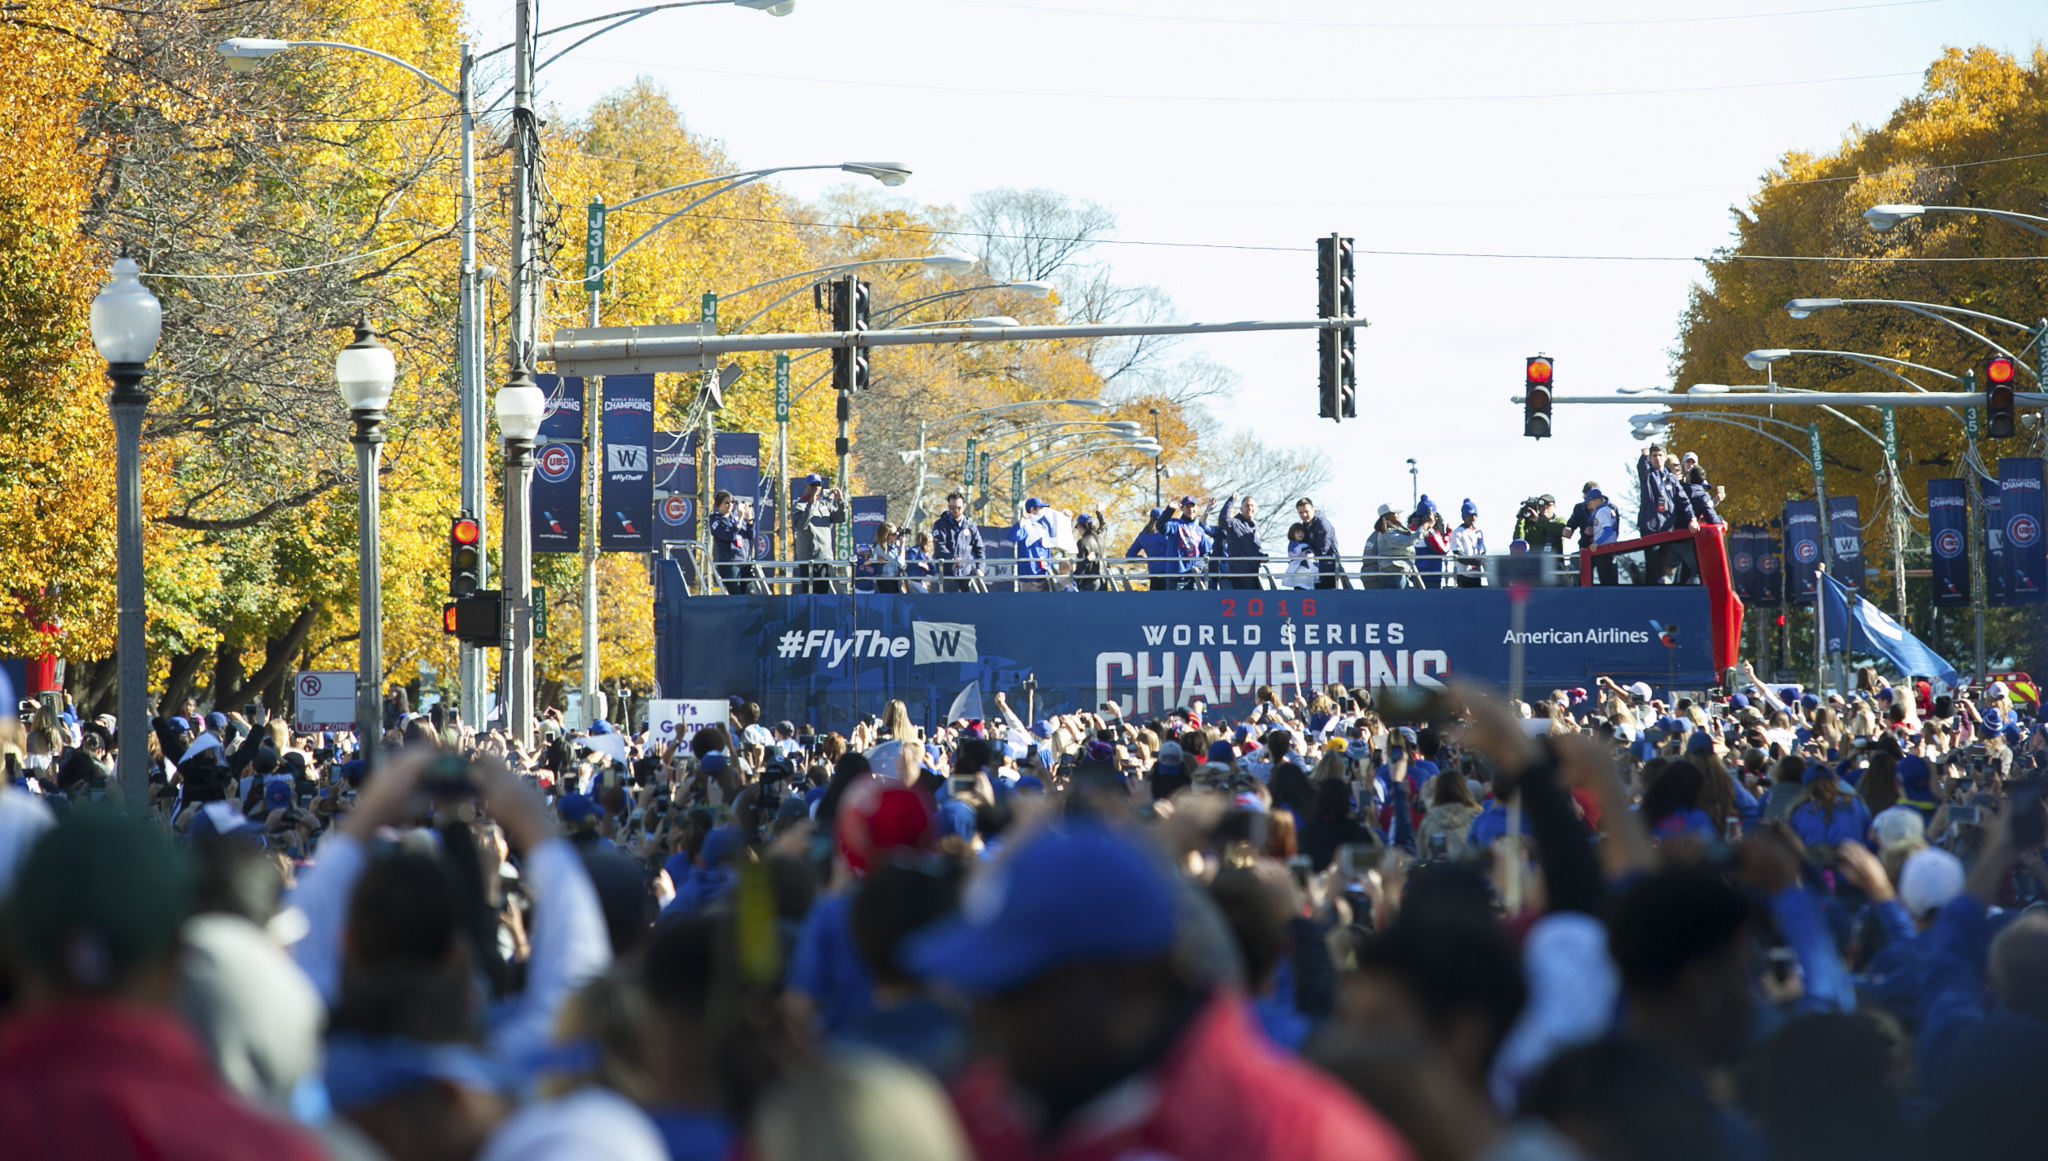 Photos from the Cubs' World Series championship parade and rally